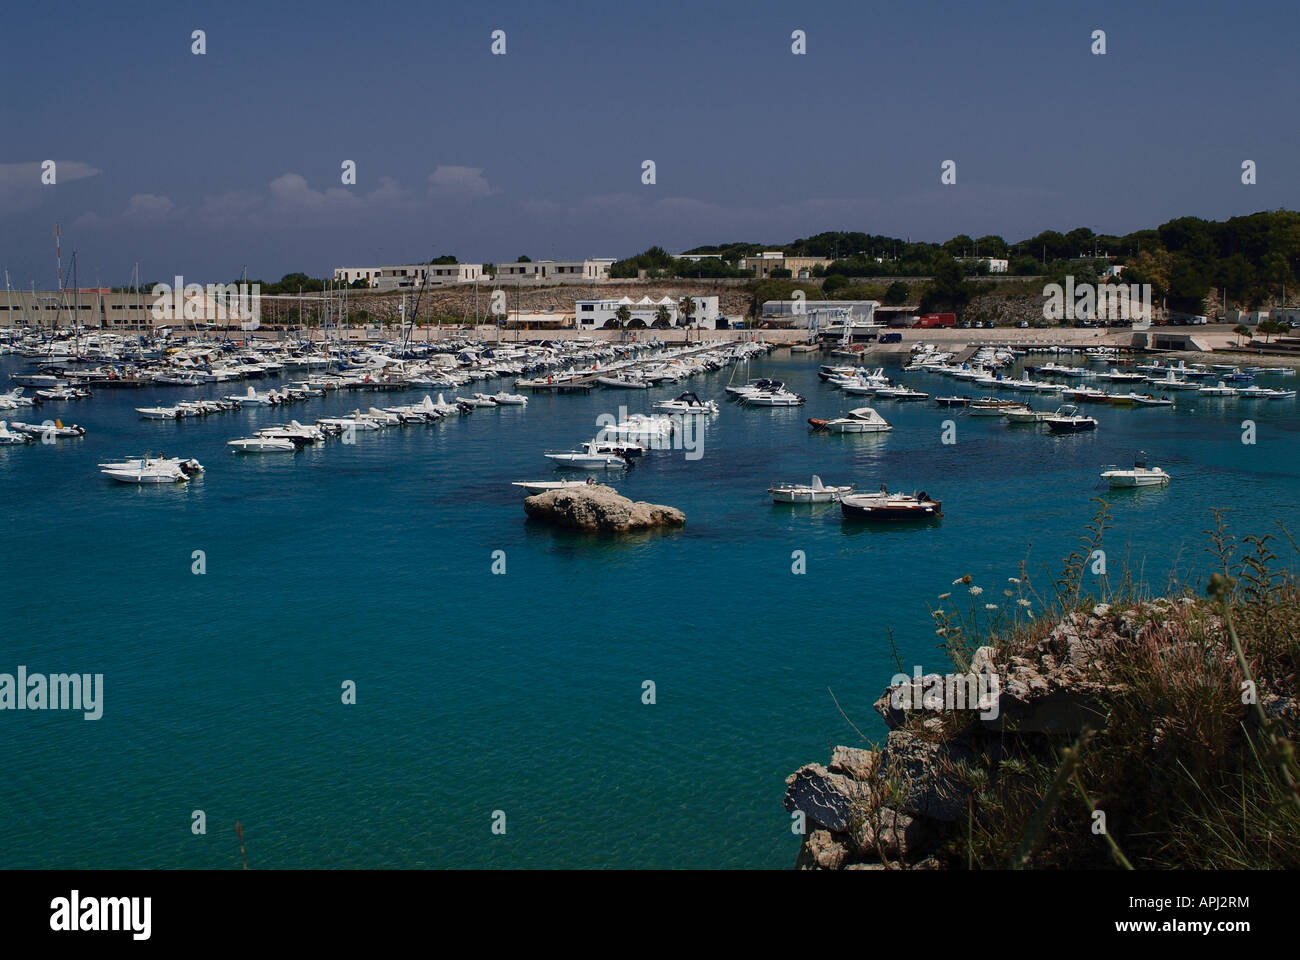 geography / travel , Italy, Apulia, Otranto, marina, Additional-Rights-Clearance-Info-Not-Available - Stock Image